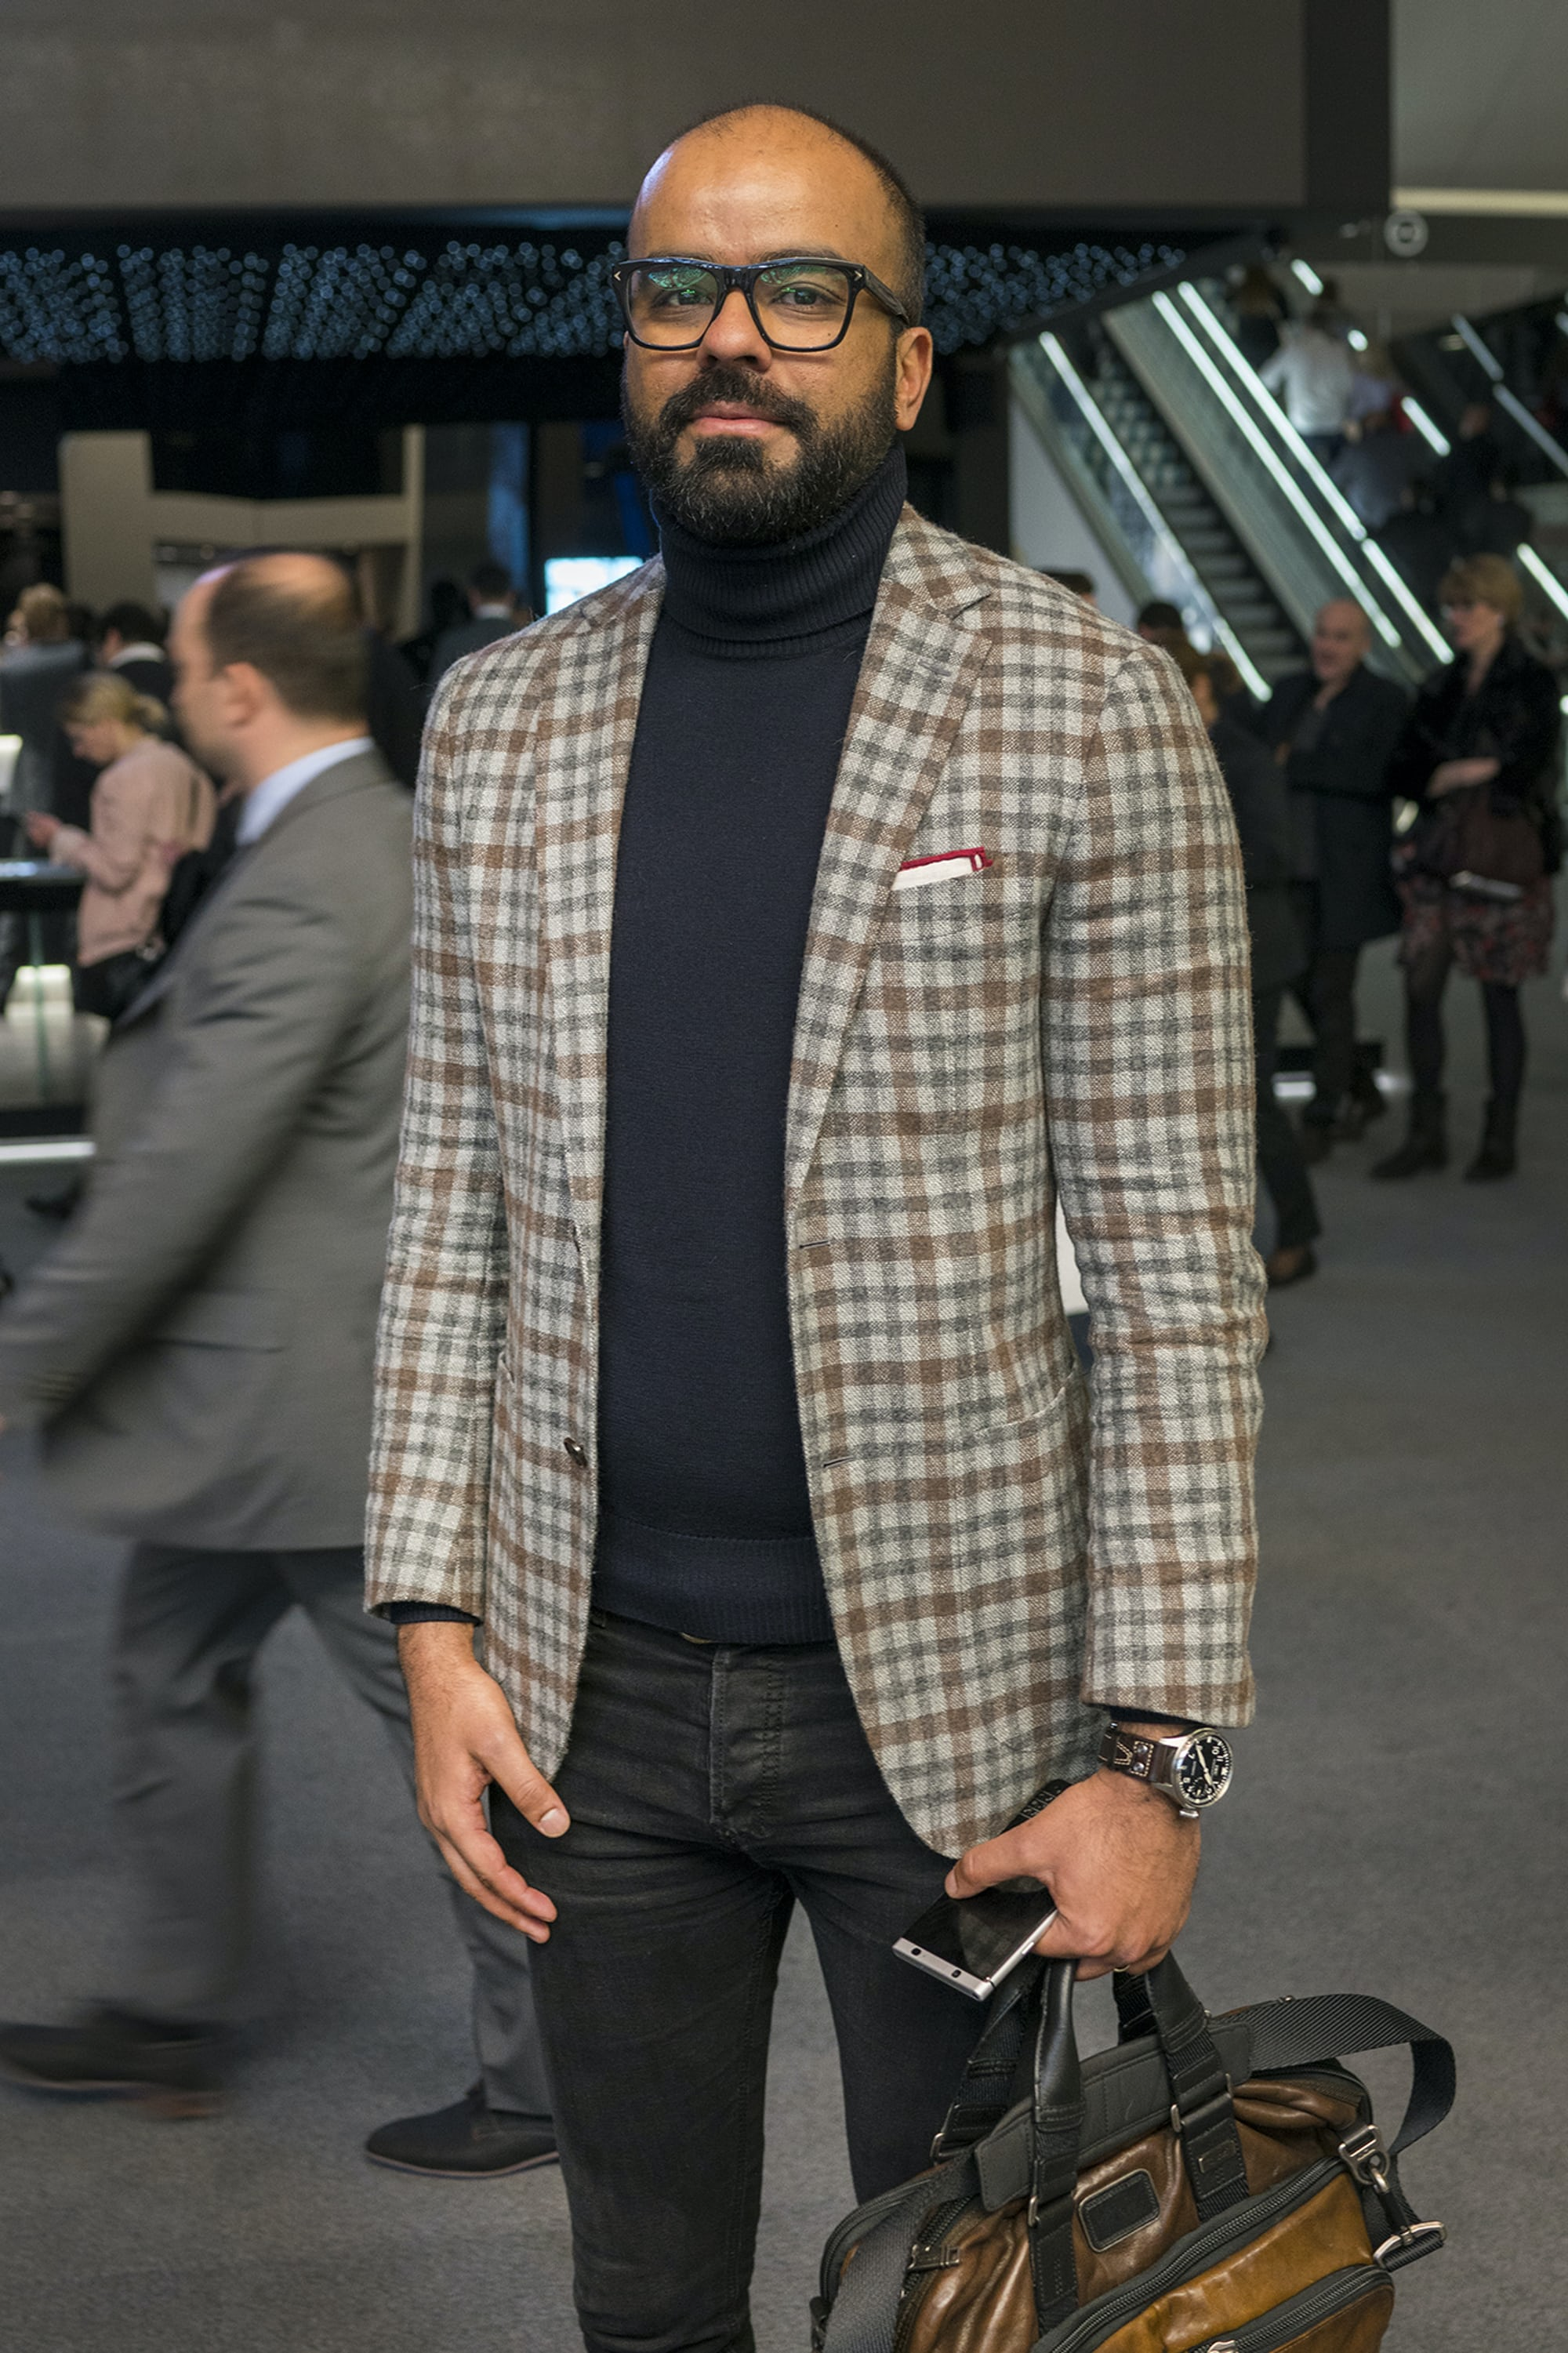 Photo Report: The Fashion And Watches Of Baselworld 2018 Photo Report: The Fashion And Watches Of Baselworld 2018 DSC00924 copy